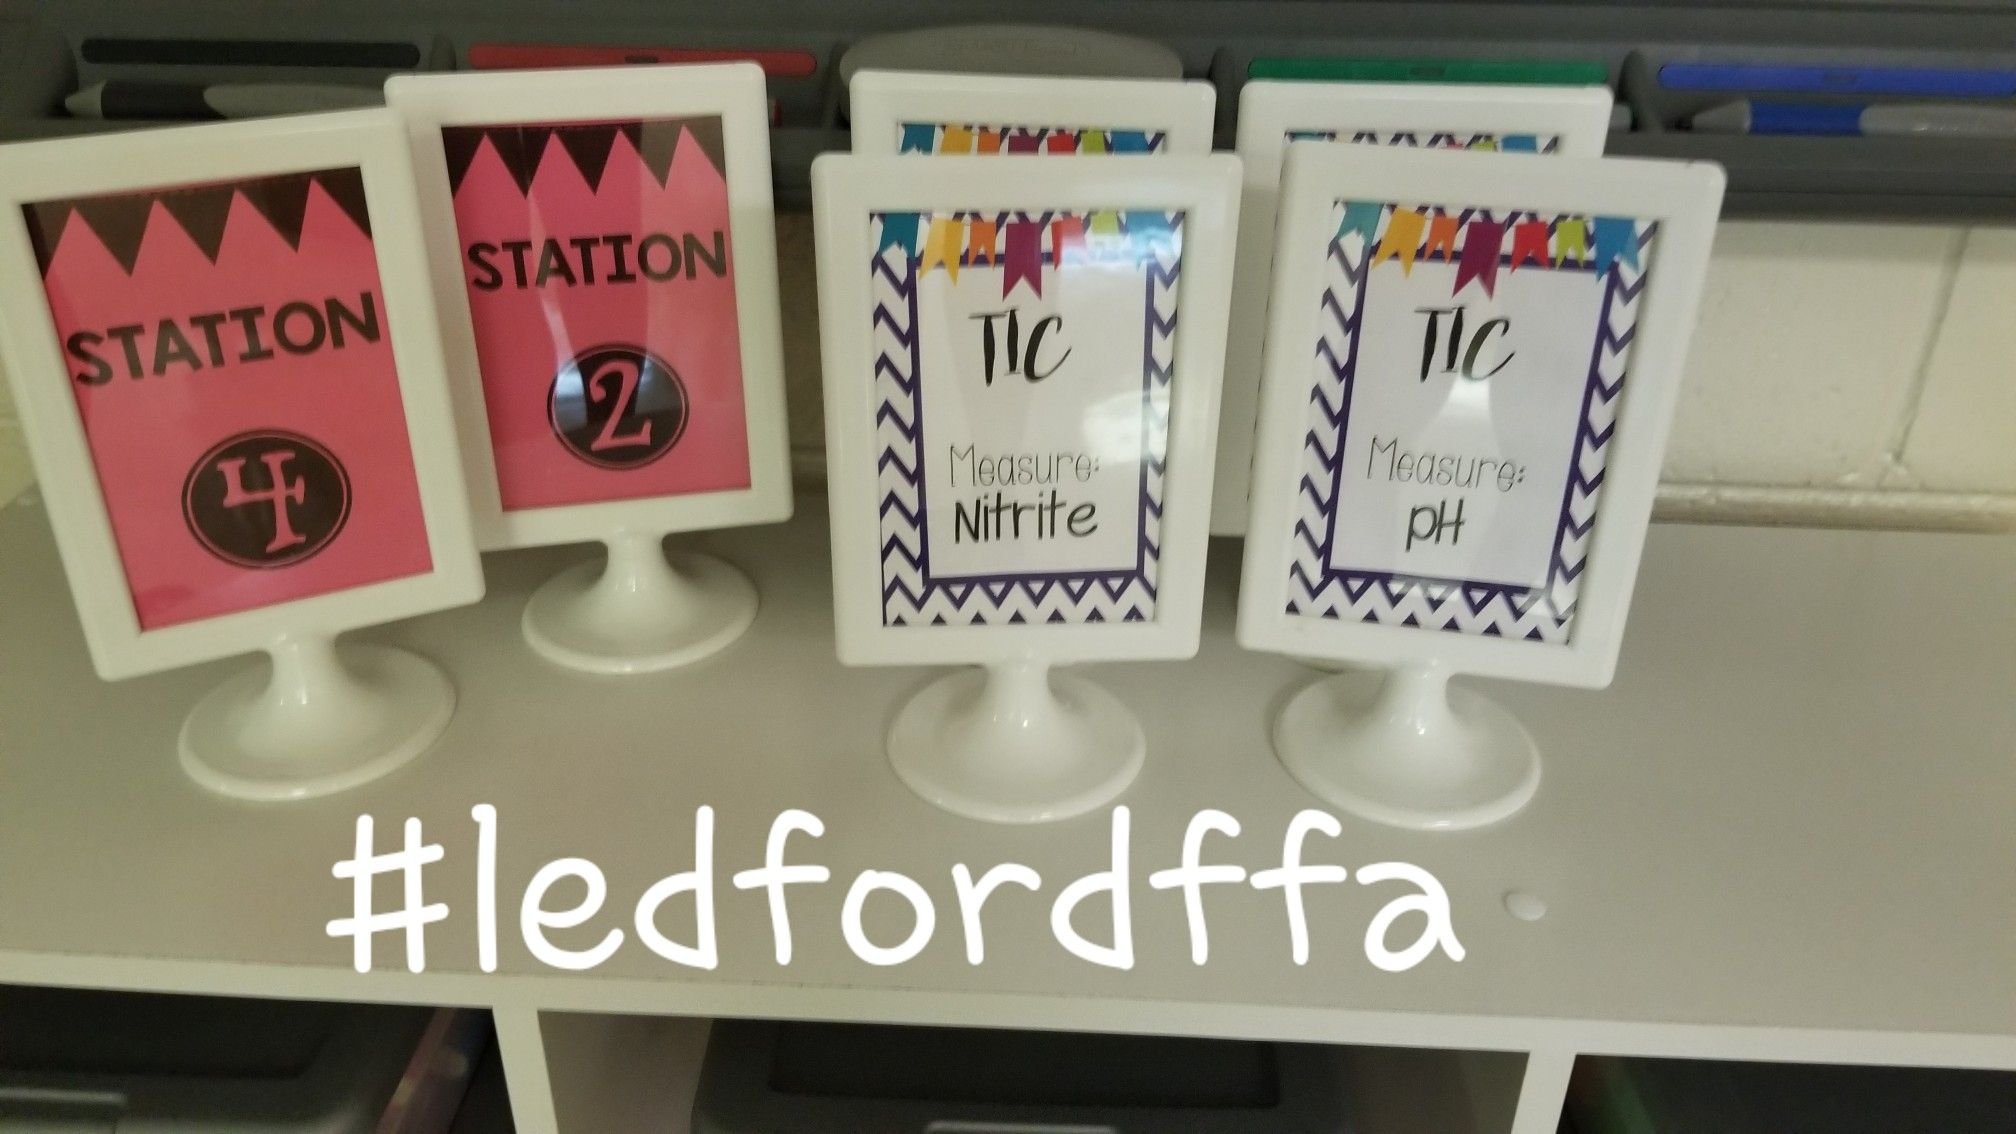 Love These Photo Frames From Ikea That I Made Into Station